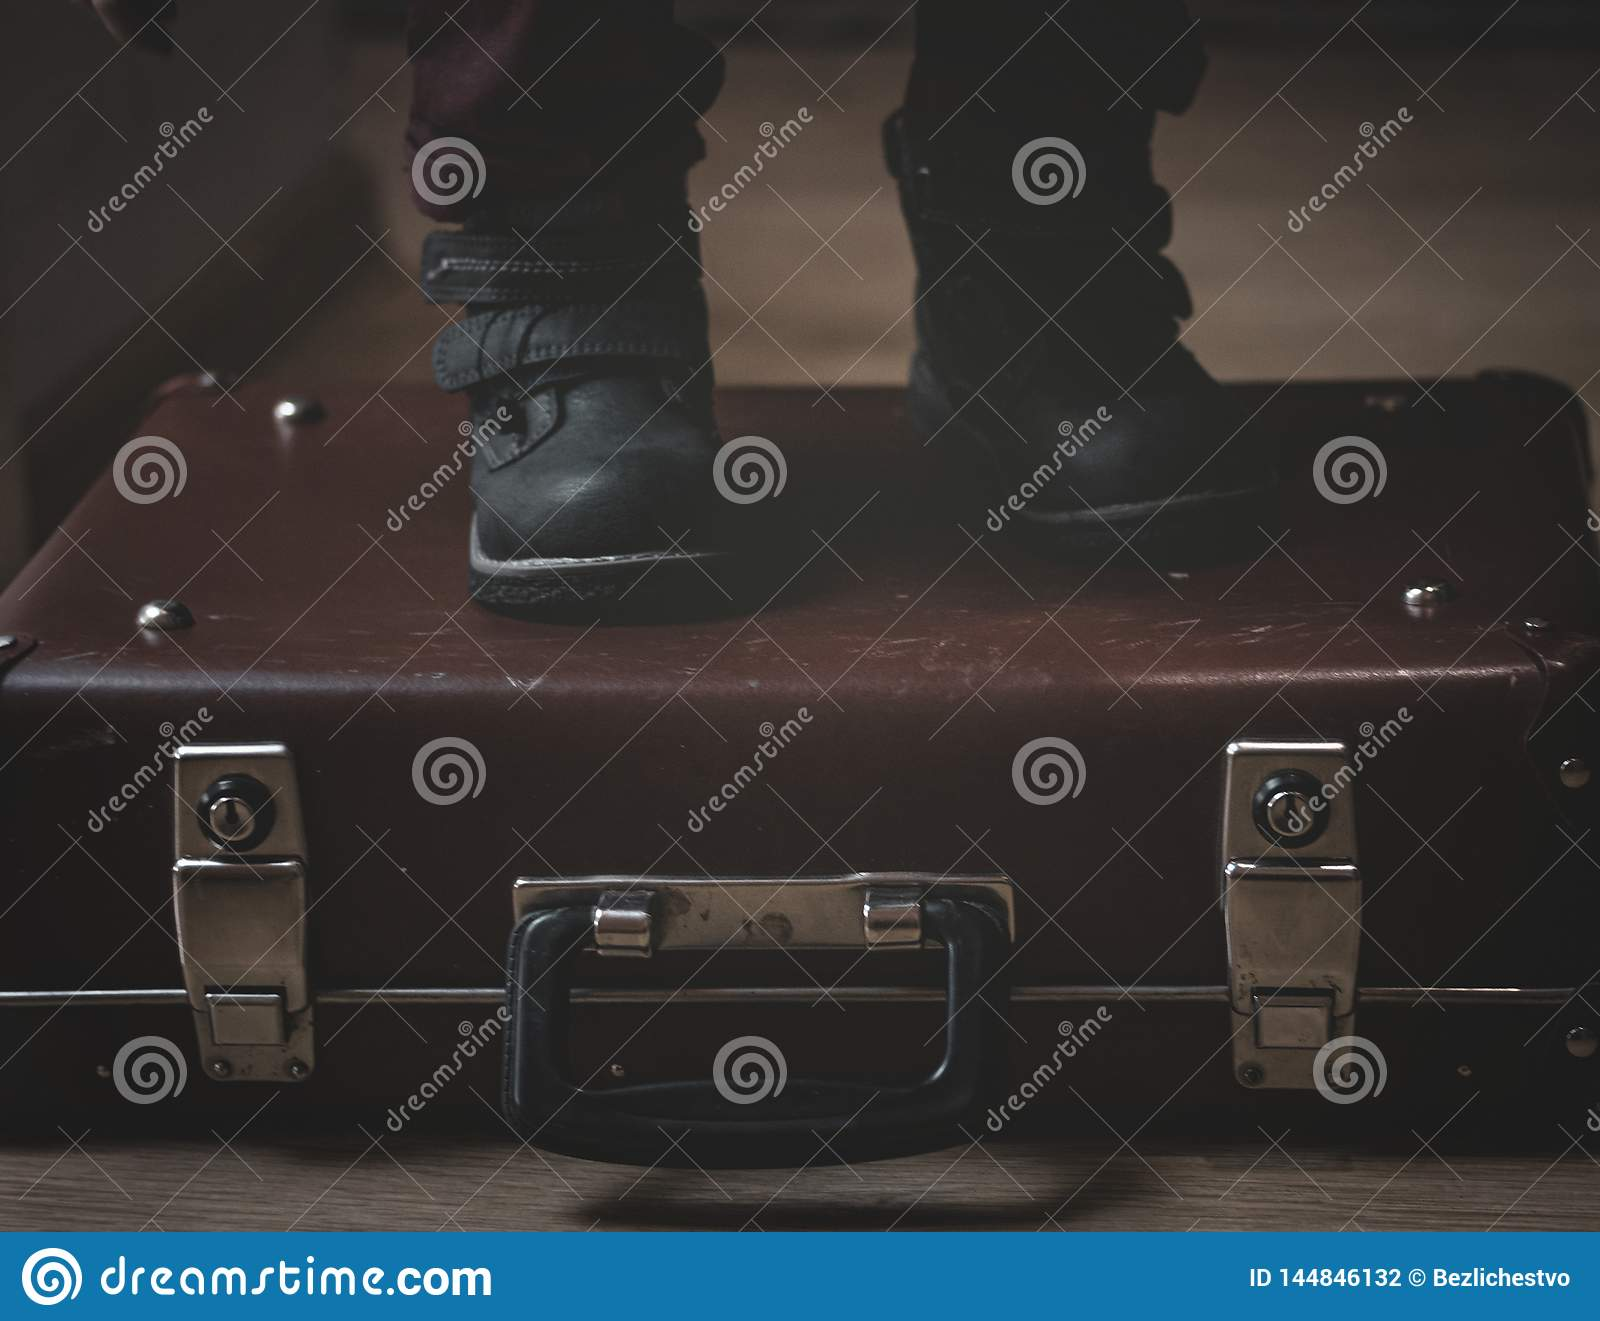 On a retro vintage burgundy brown suitcase are the feet of a child in shoes. Low key. Matte shadows